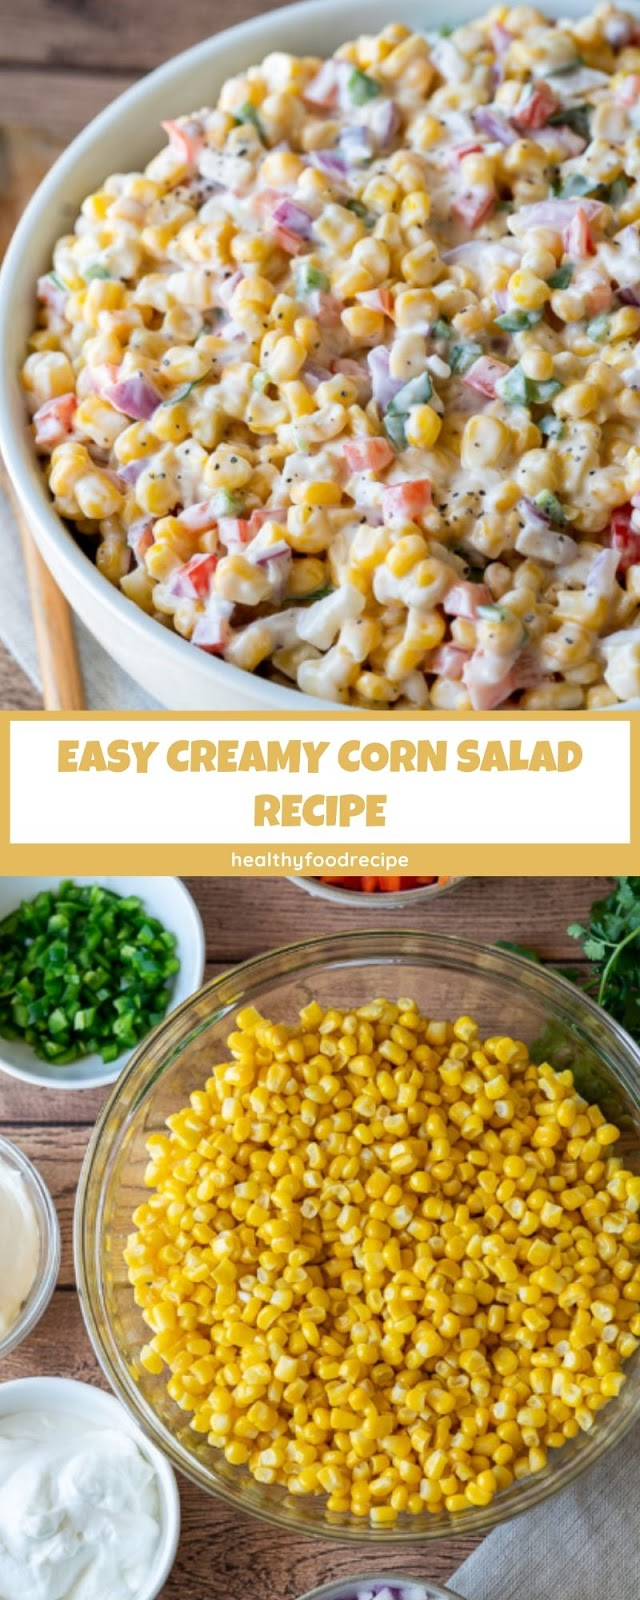 EASY CREAMY CORN SALAD RECIPE